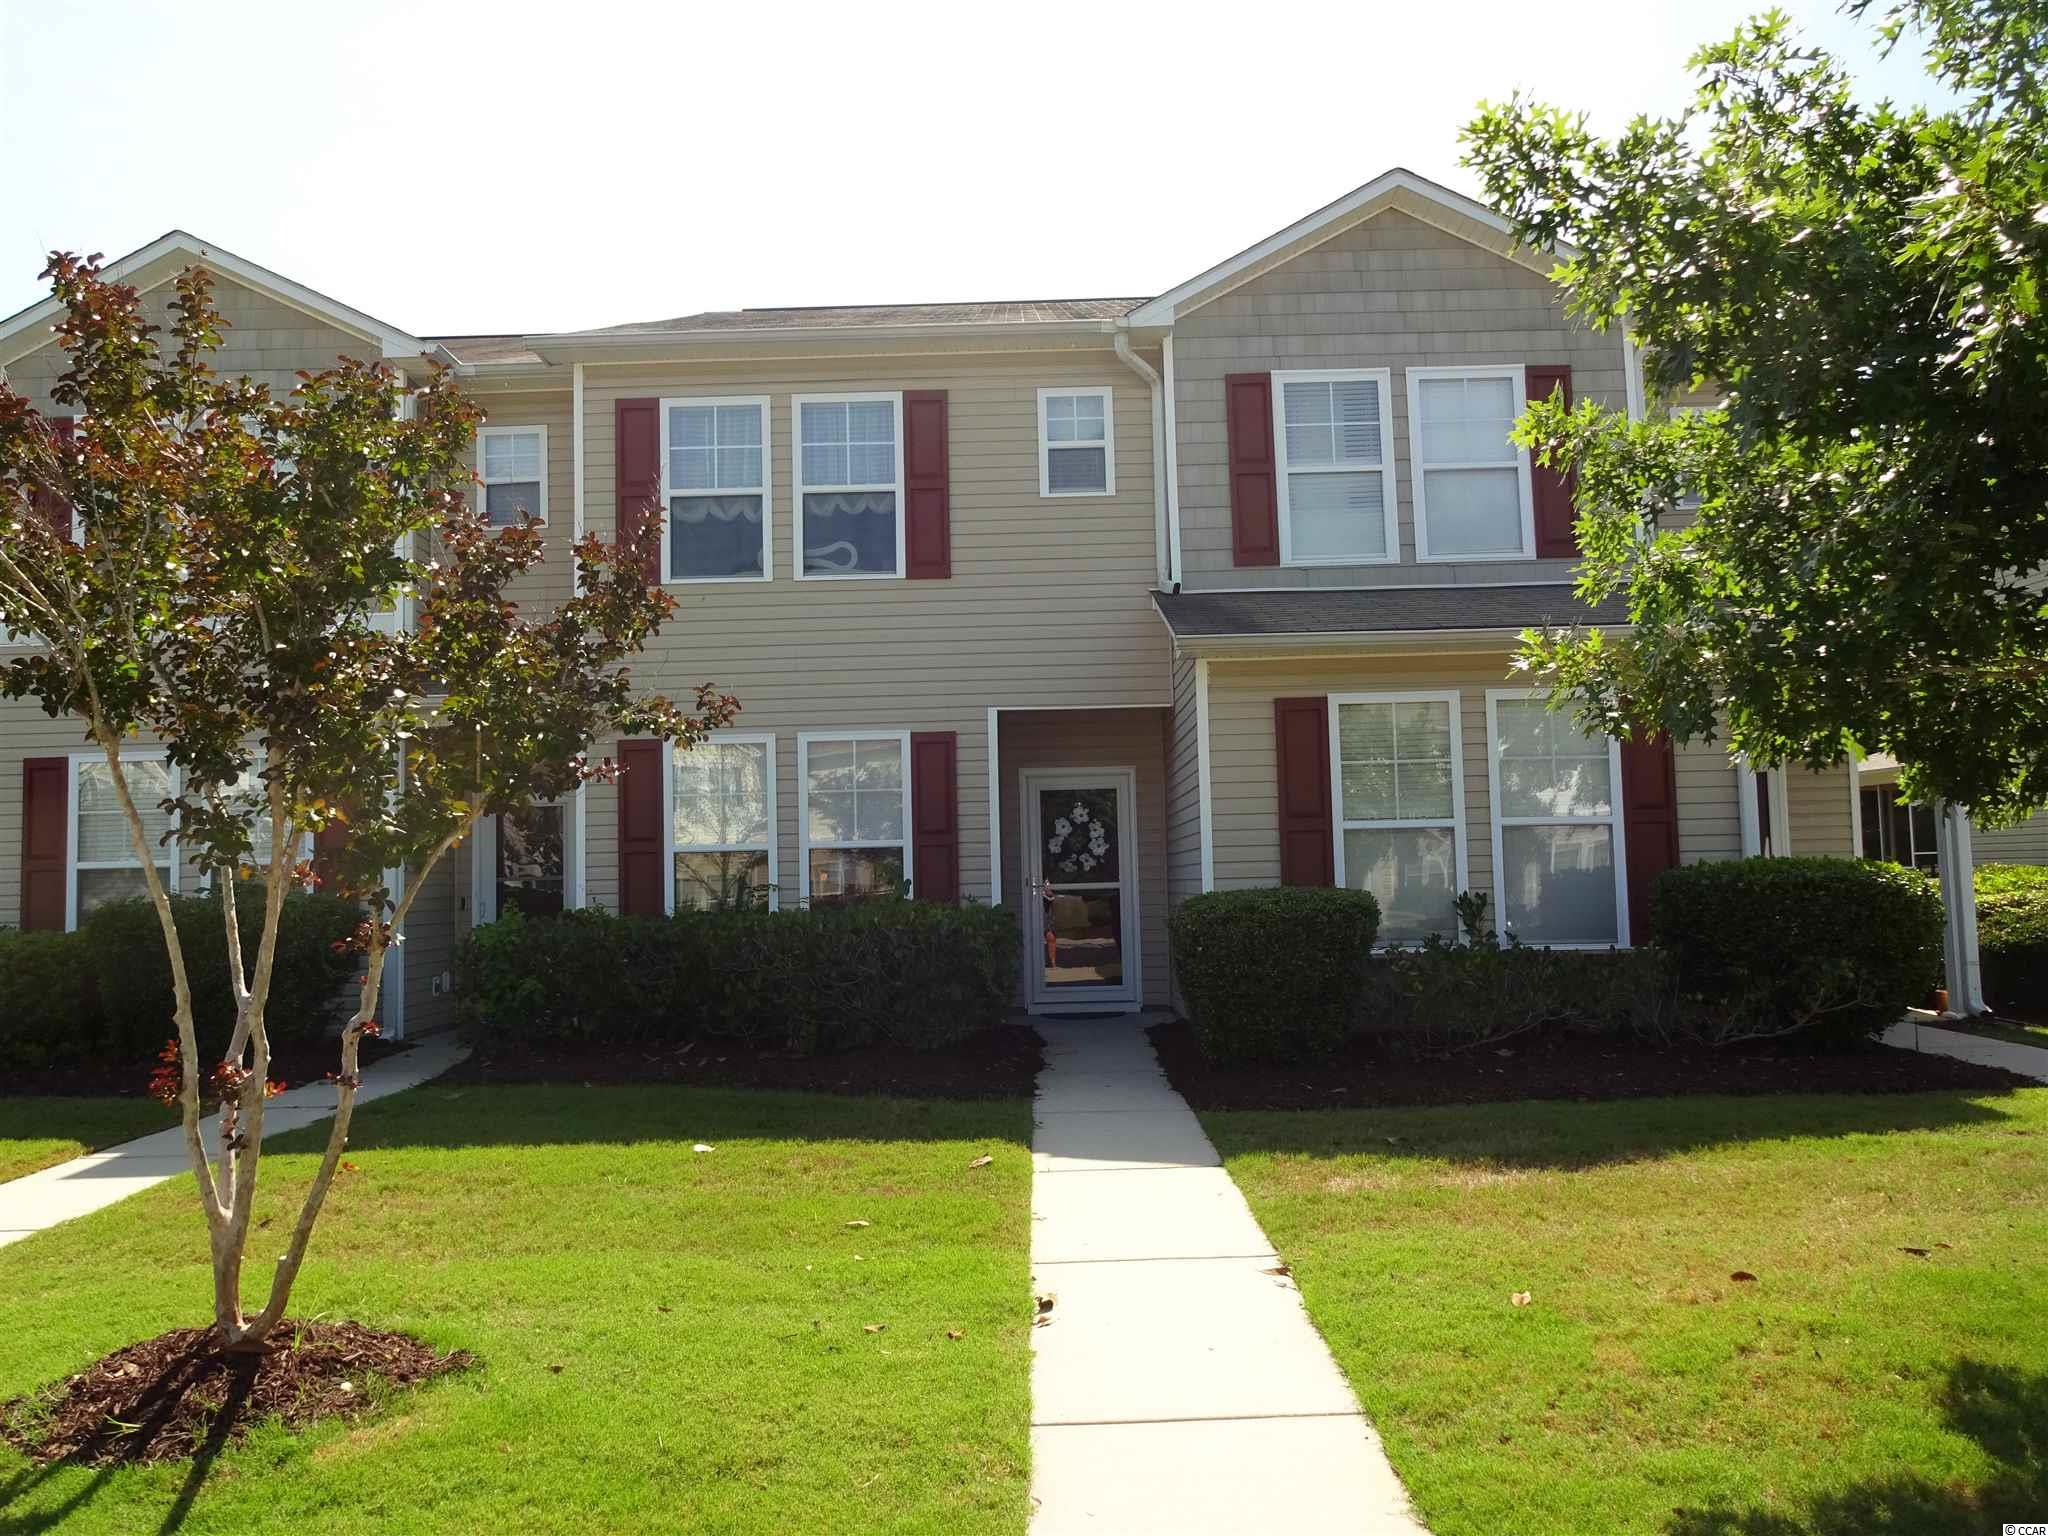 Gorgeous, well maintained 2 bedroom, 2.5 bath move in ready townhouse.  The main living areas are all on the first level; dining room, kitchen, living room, half bath, large storage area under the stairs, and a screened-in porch. The rear porch has an attached storage closet and private tree lined view. Kitchen features a breakfast bar and pantry and has been updated with granite countertops and shiplap ceiling. The second level features the master bedroom with walk-in closet and bathroom, laundry, linen closet and a guest bedroom with a full bathroom. Perfect for vacation home, primary residence or investment property. Schedule your showing today before this gem is gone!